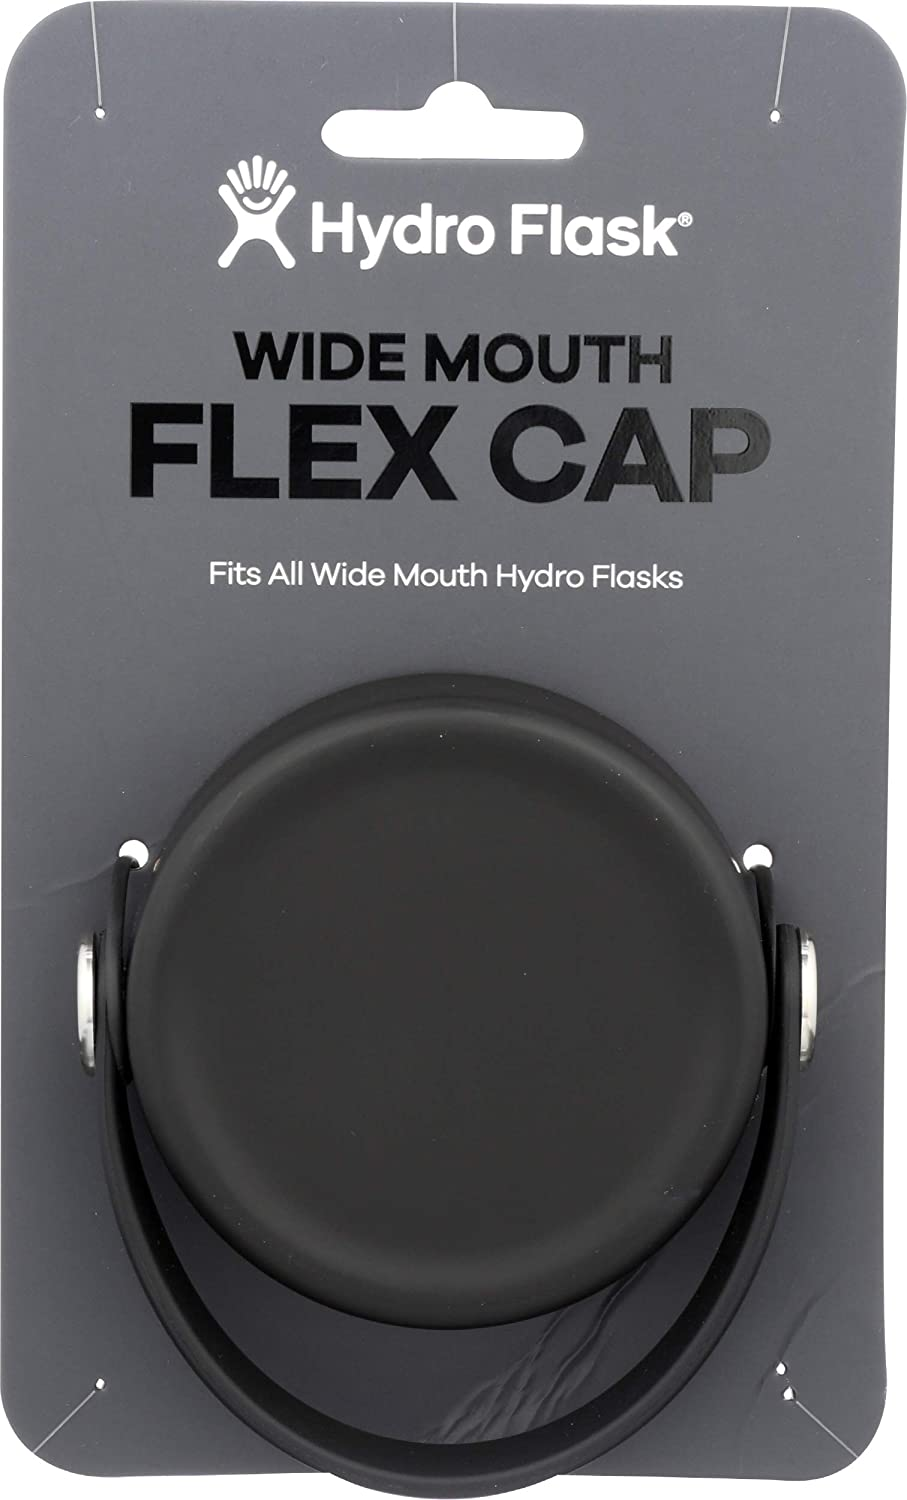 Hydro Flask, Wide Mouth Flex Cap Black